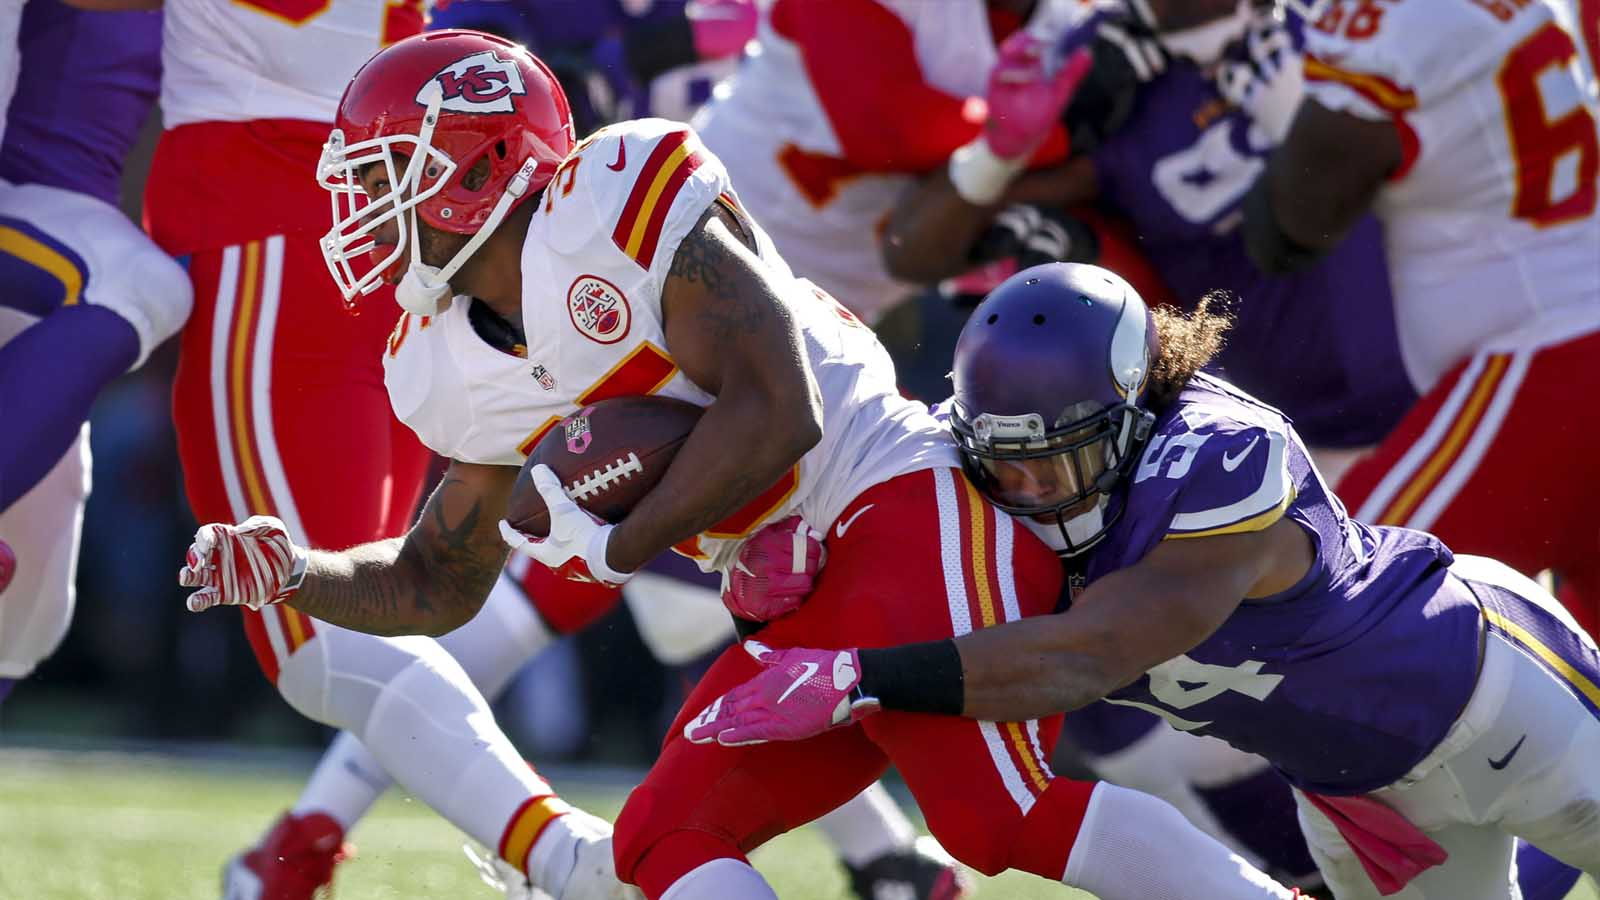 Chiefs' depth is being tested, especially at RB sans Charles